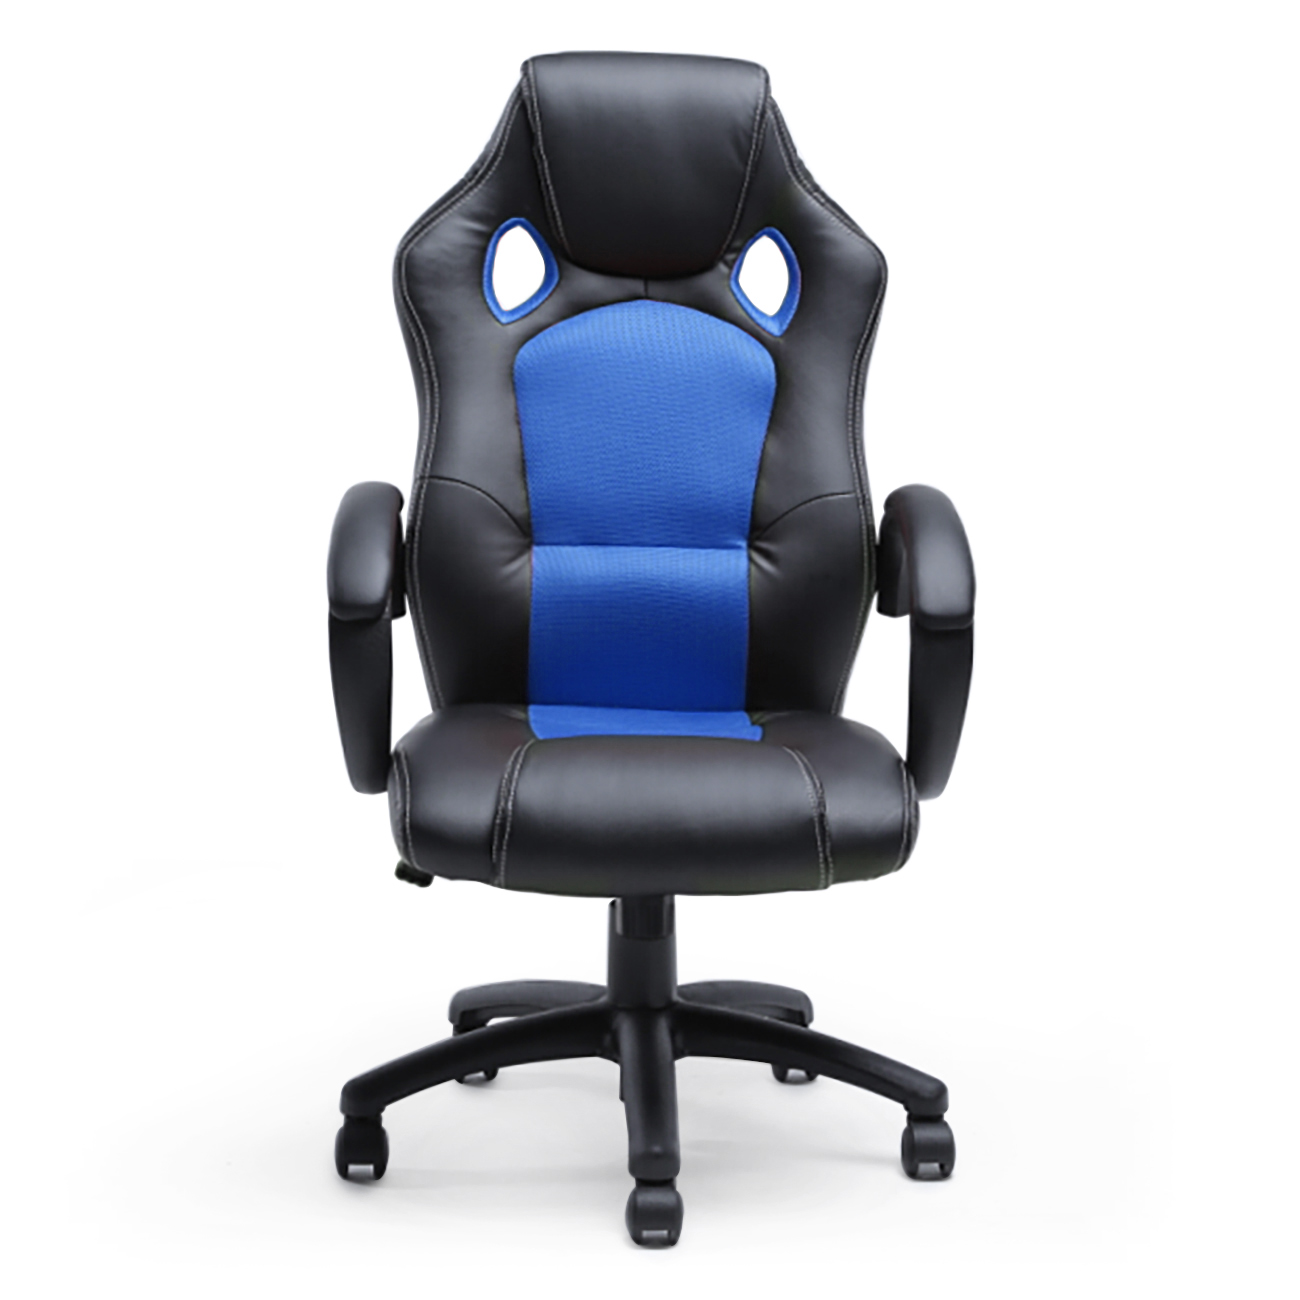 Nice Race Car Style Gaming Chair #1: 048-gm-49003-bl__1.jpg